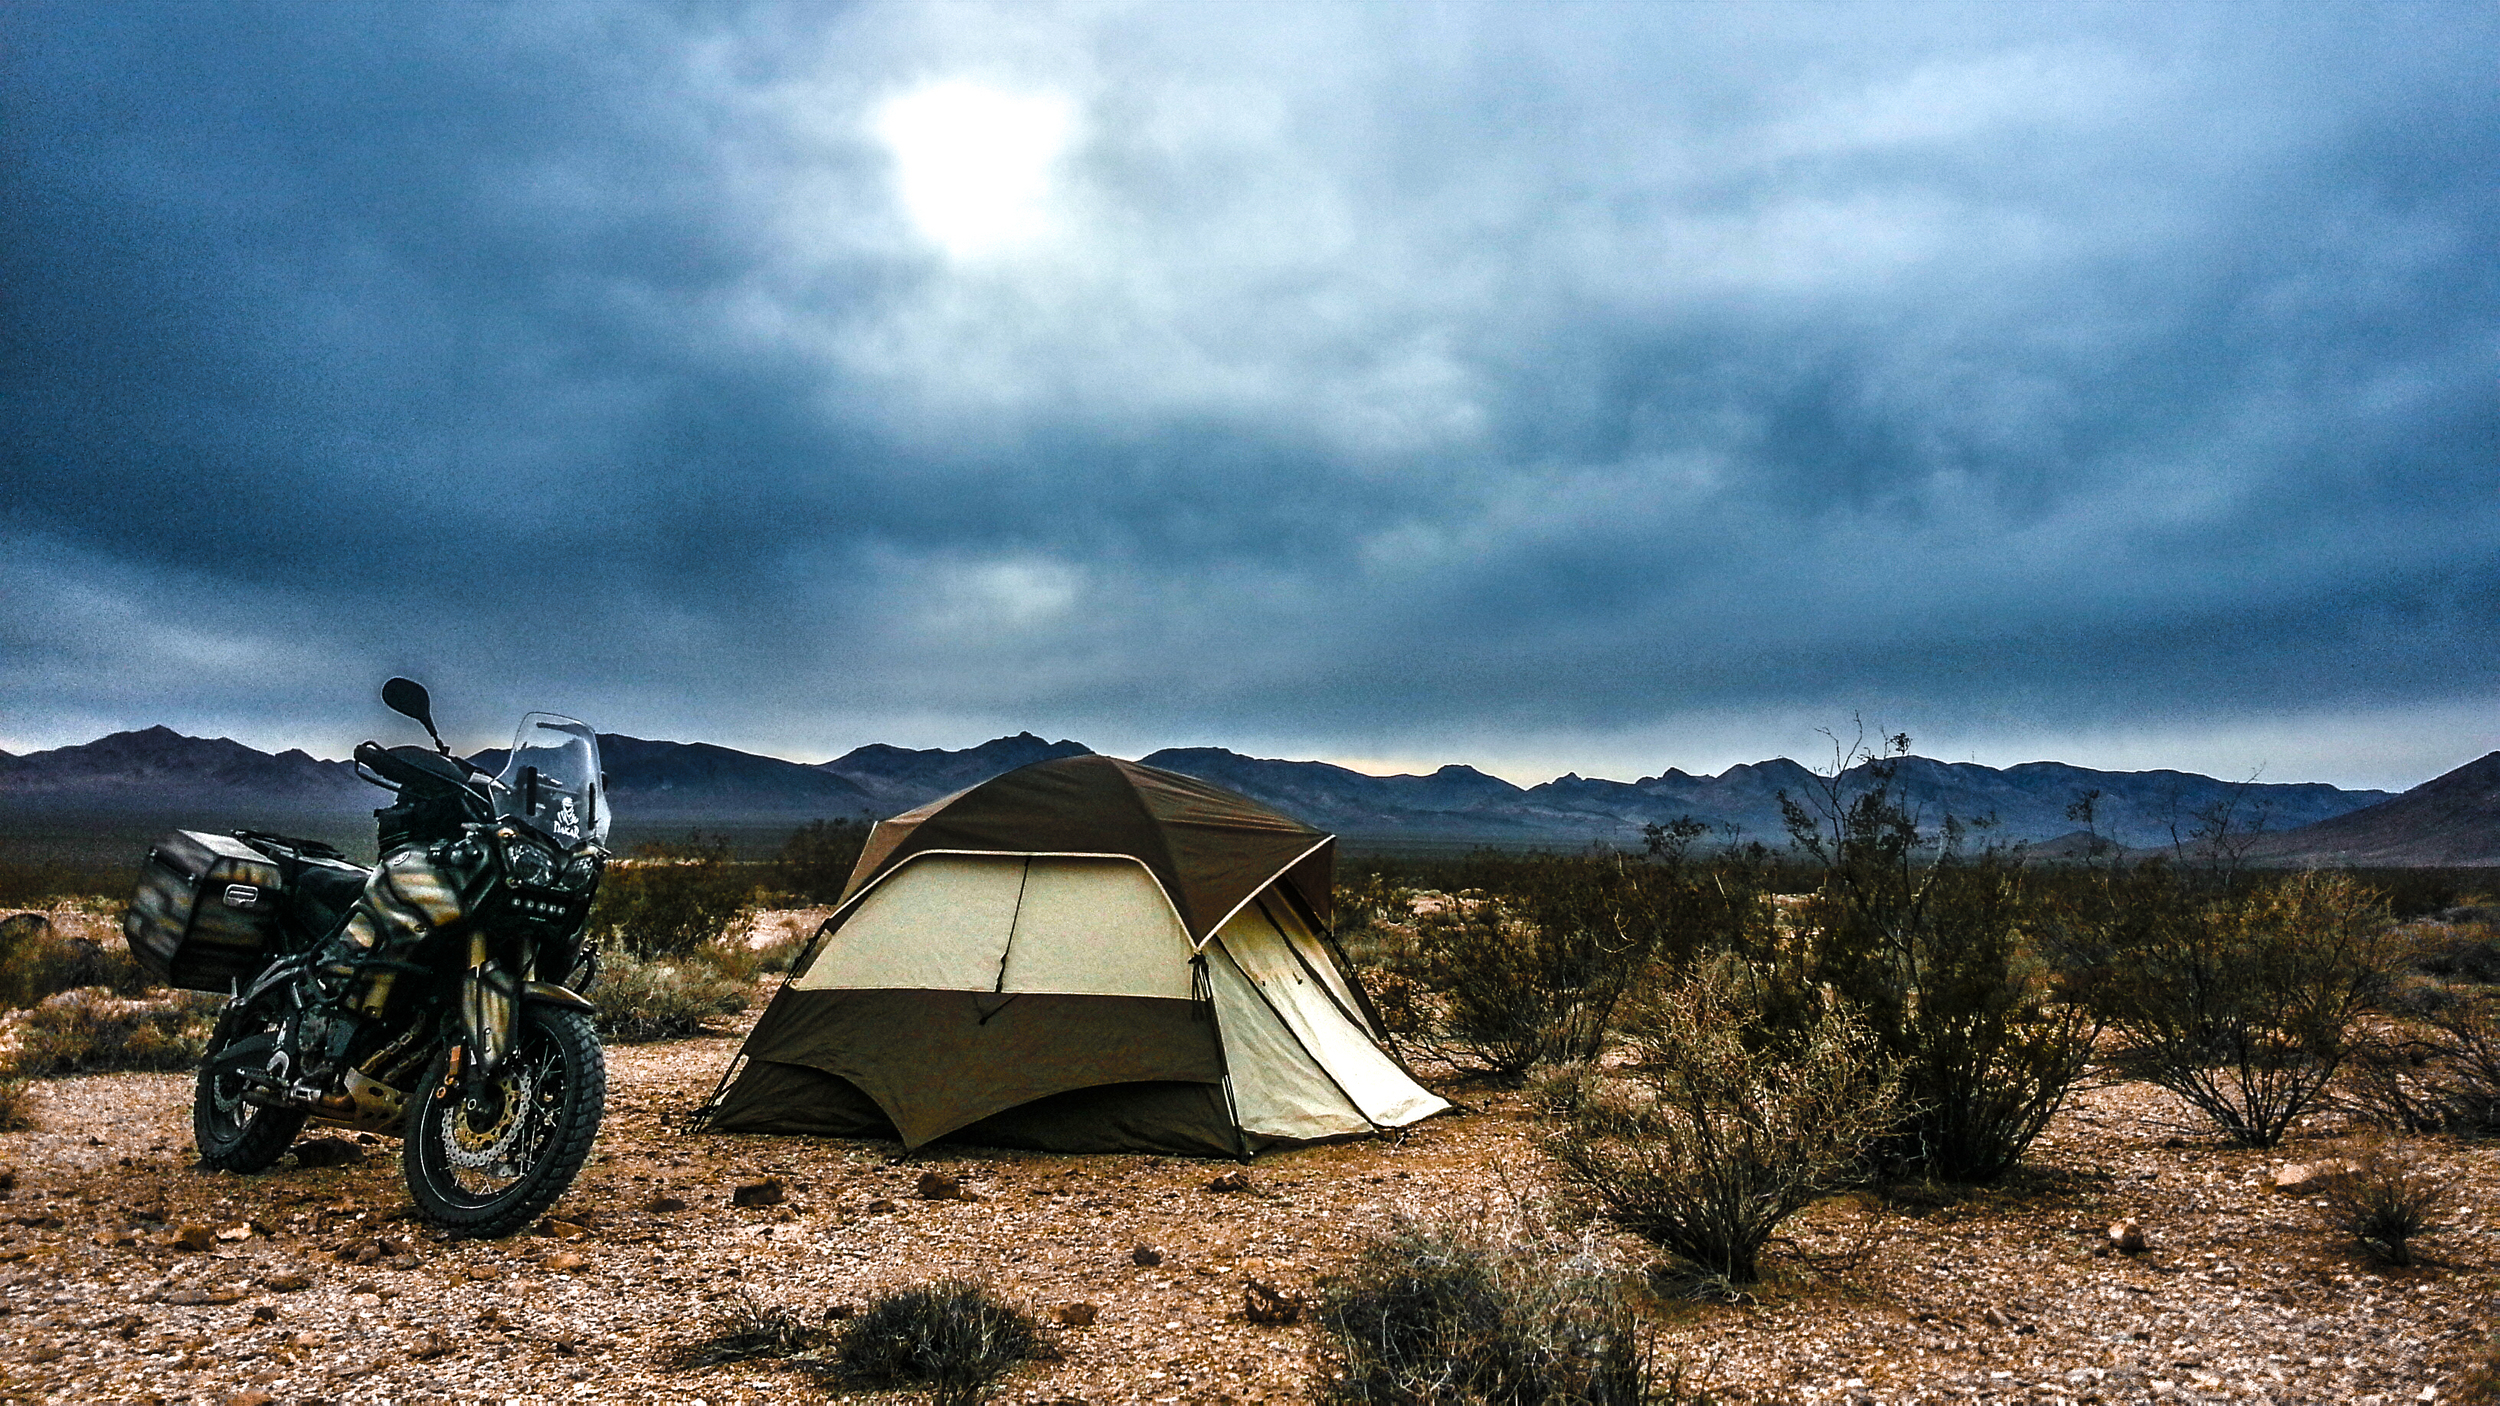 Deep in the Nevada deserts in the lap of luxury......................